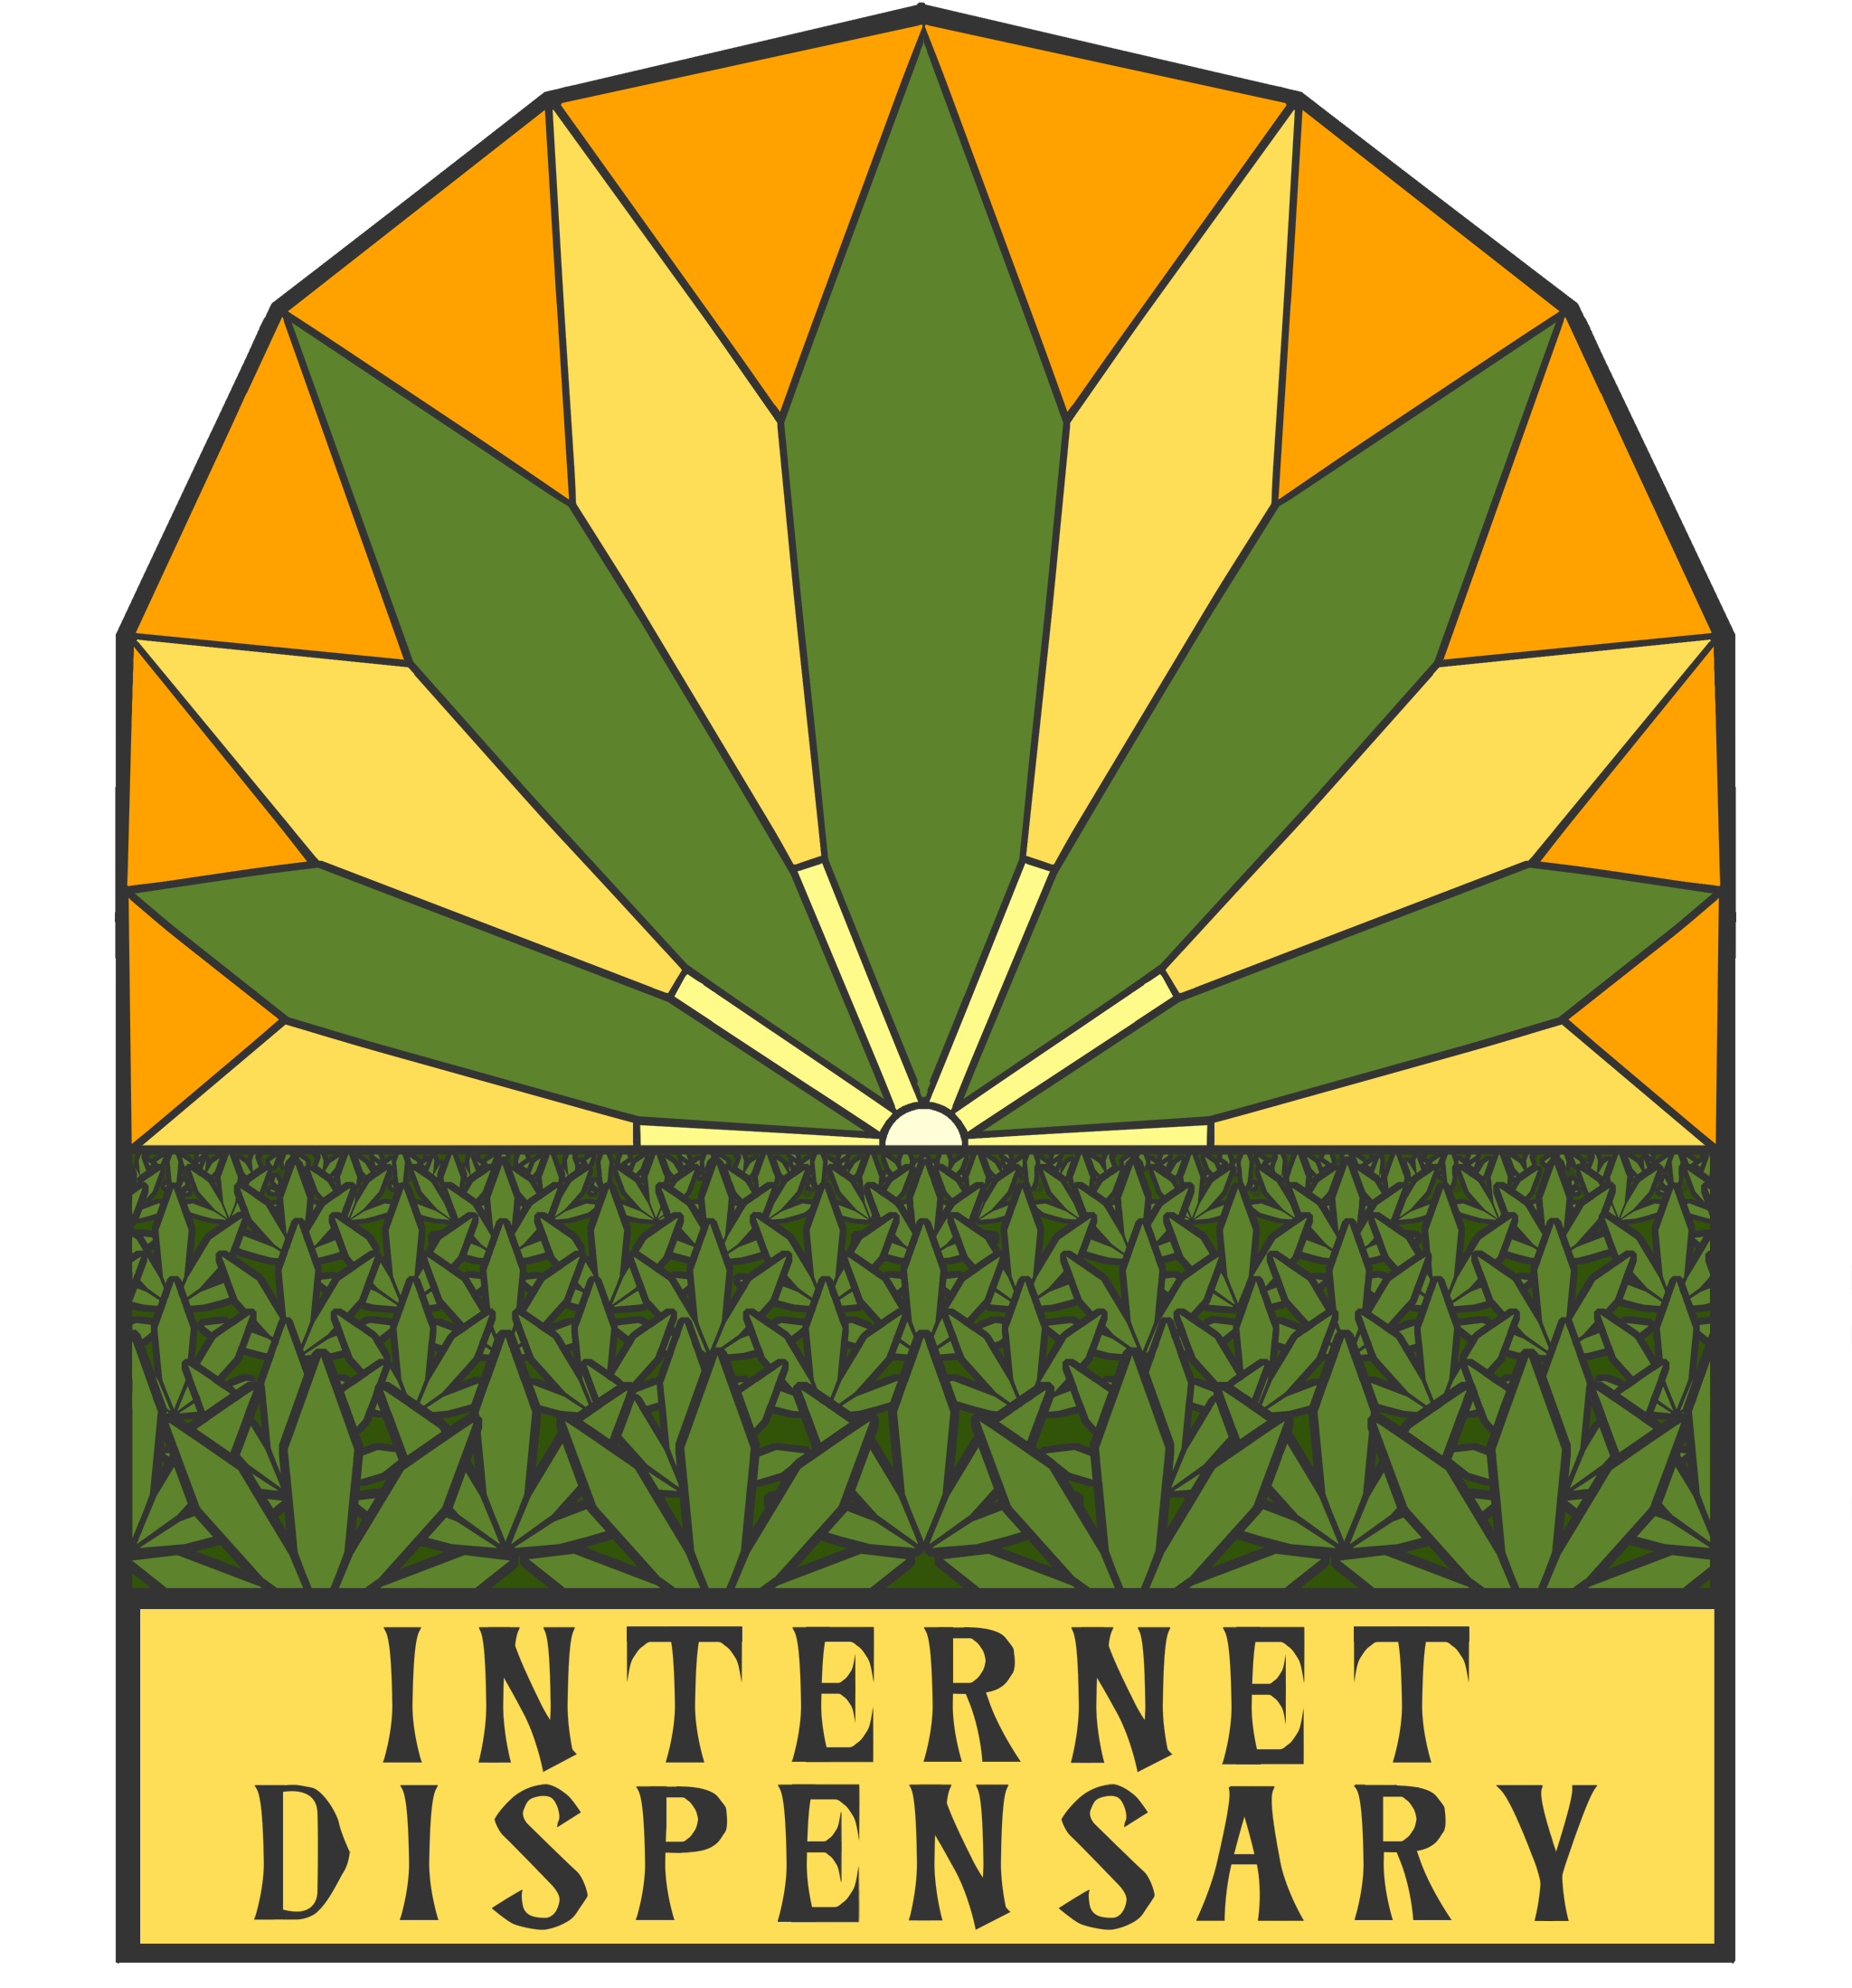 Internet Dispensary